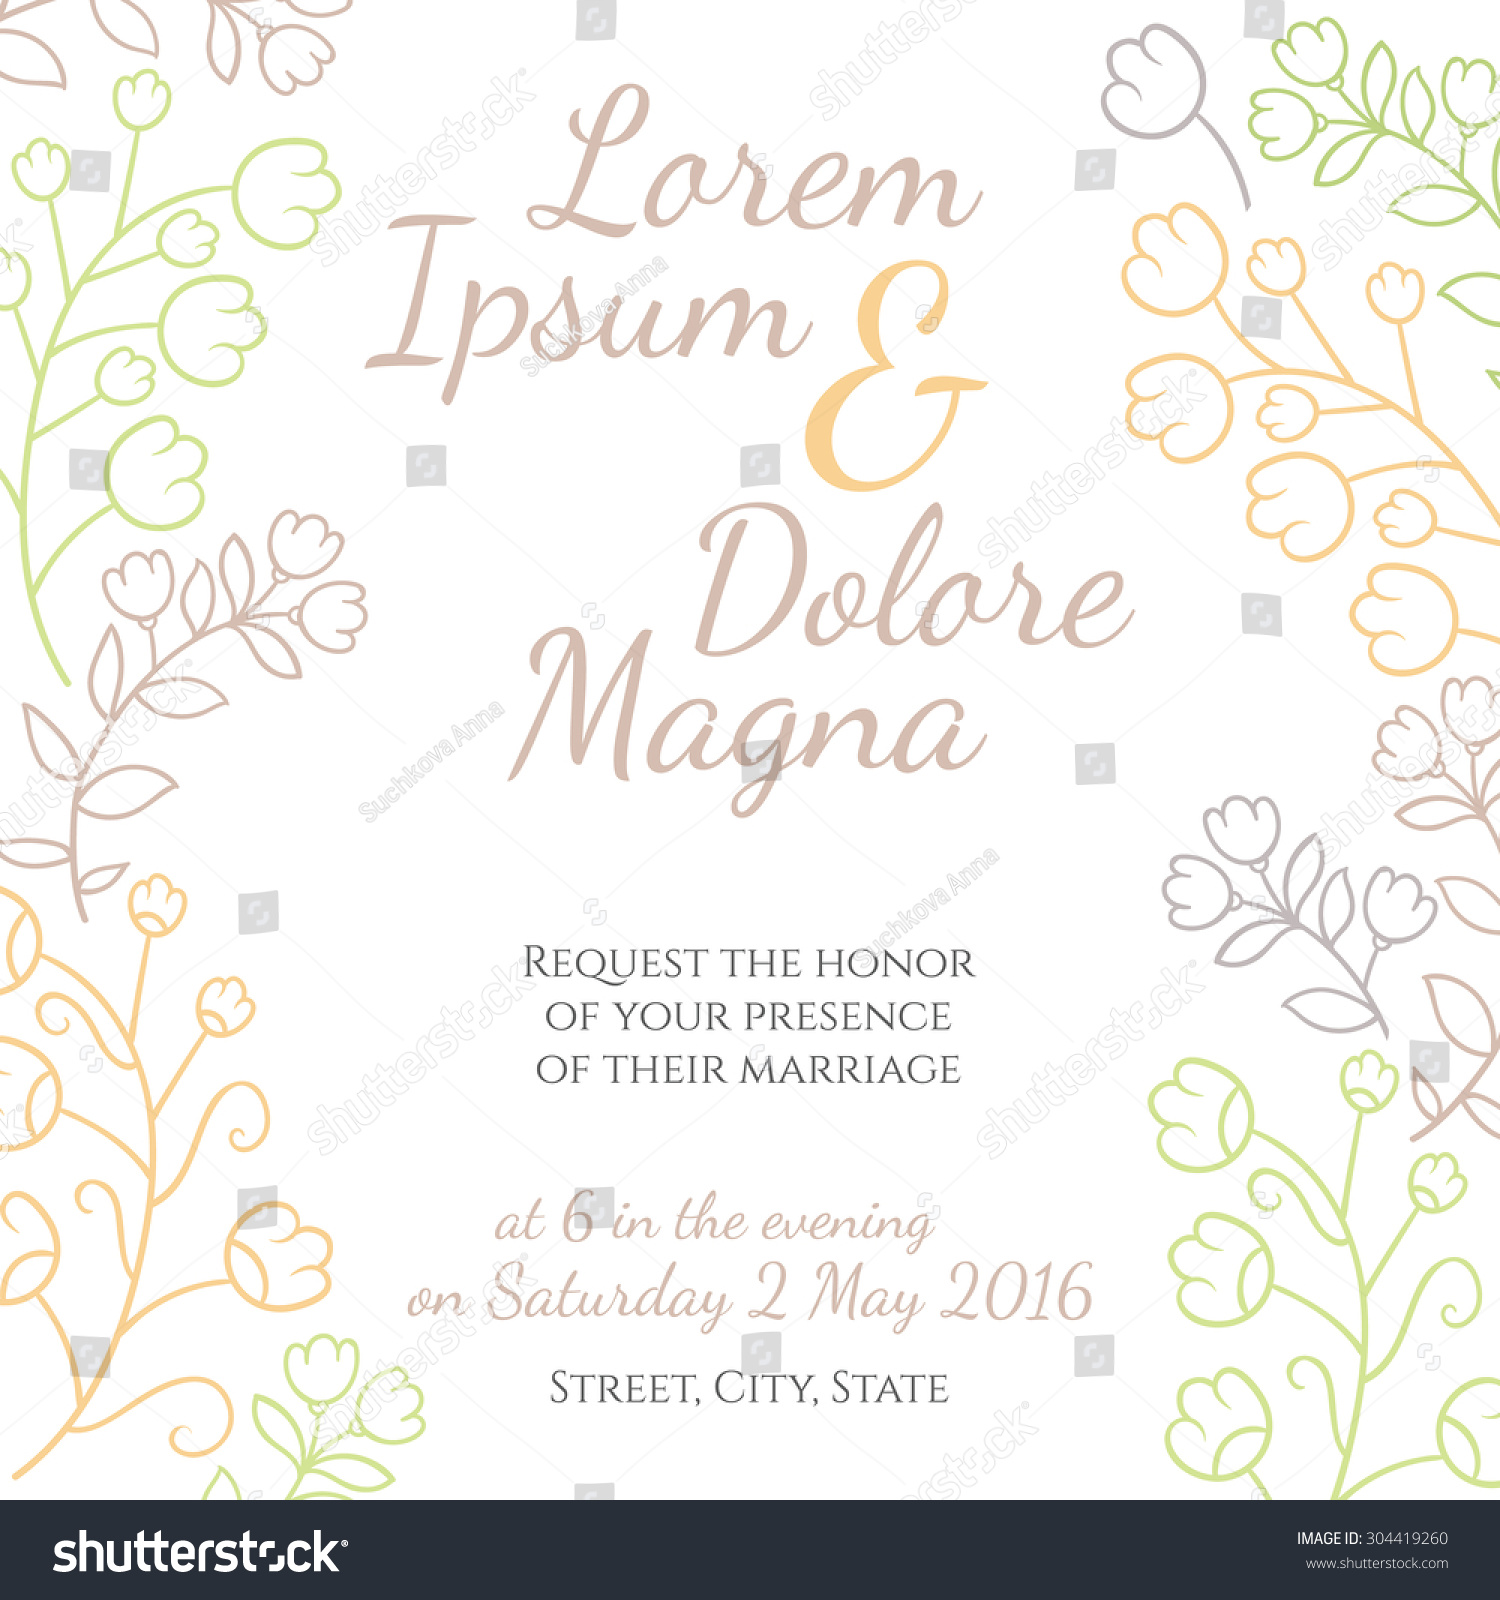 Invitation wedding card vector template invitations em vetor stock invitation wedding card vector template for invitations flyers postcards cards and so stopboris Images